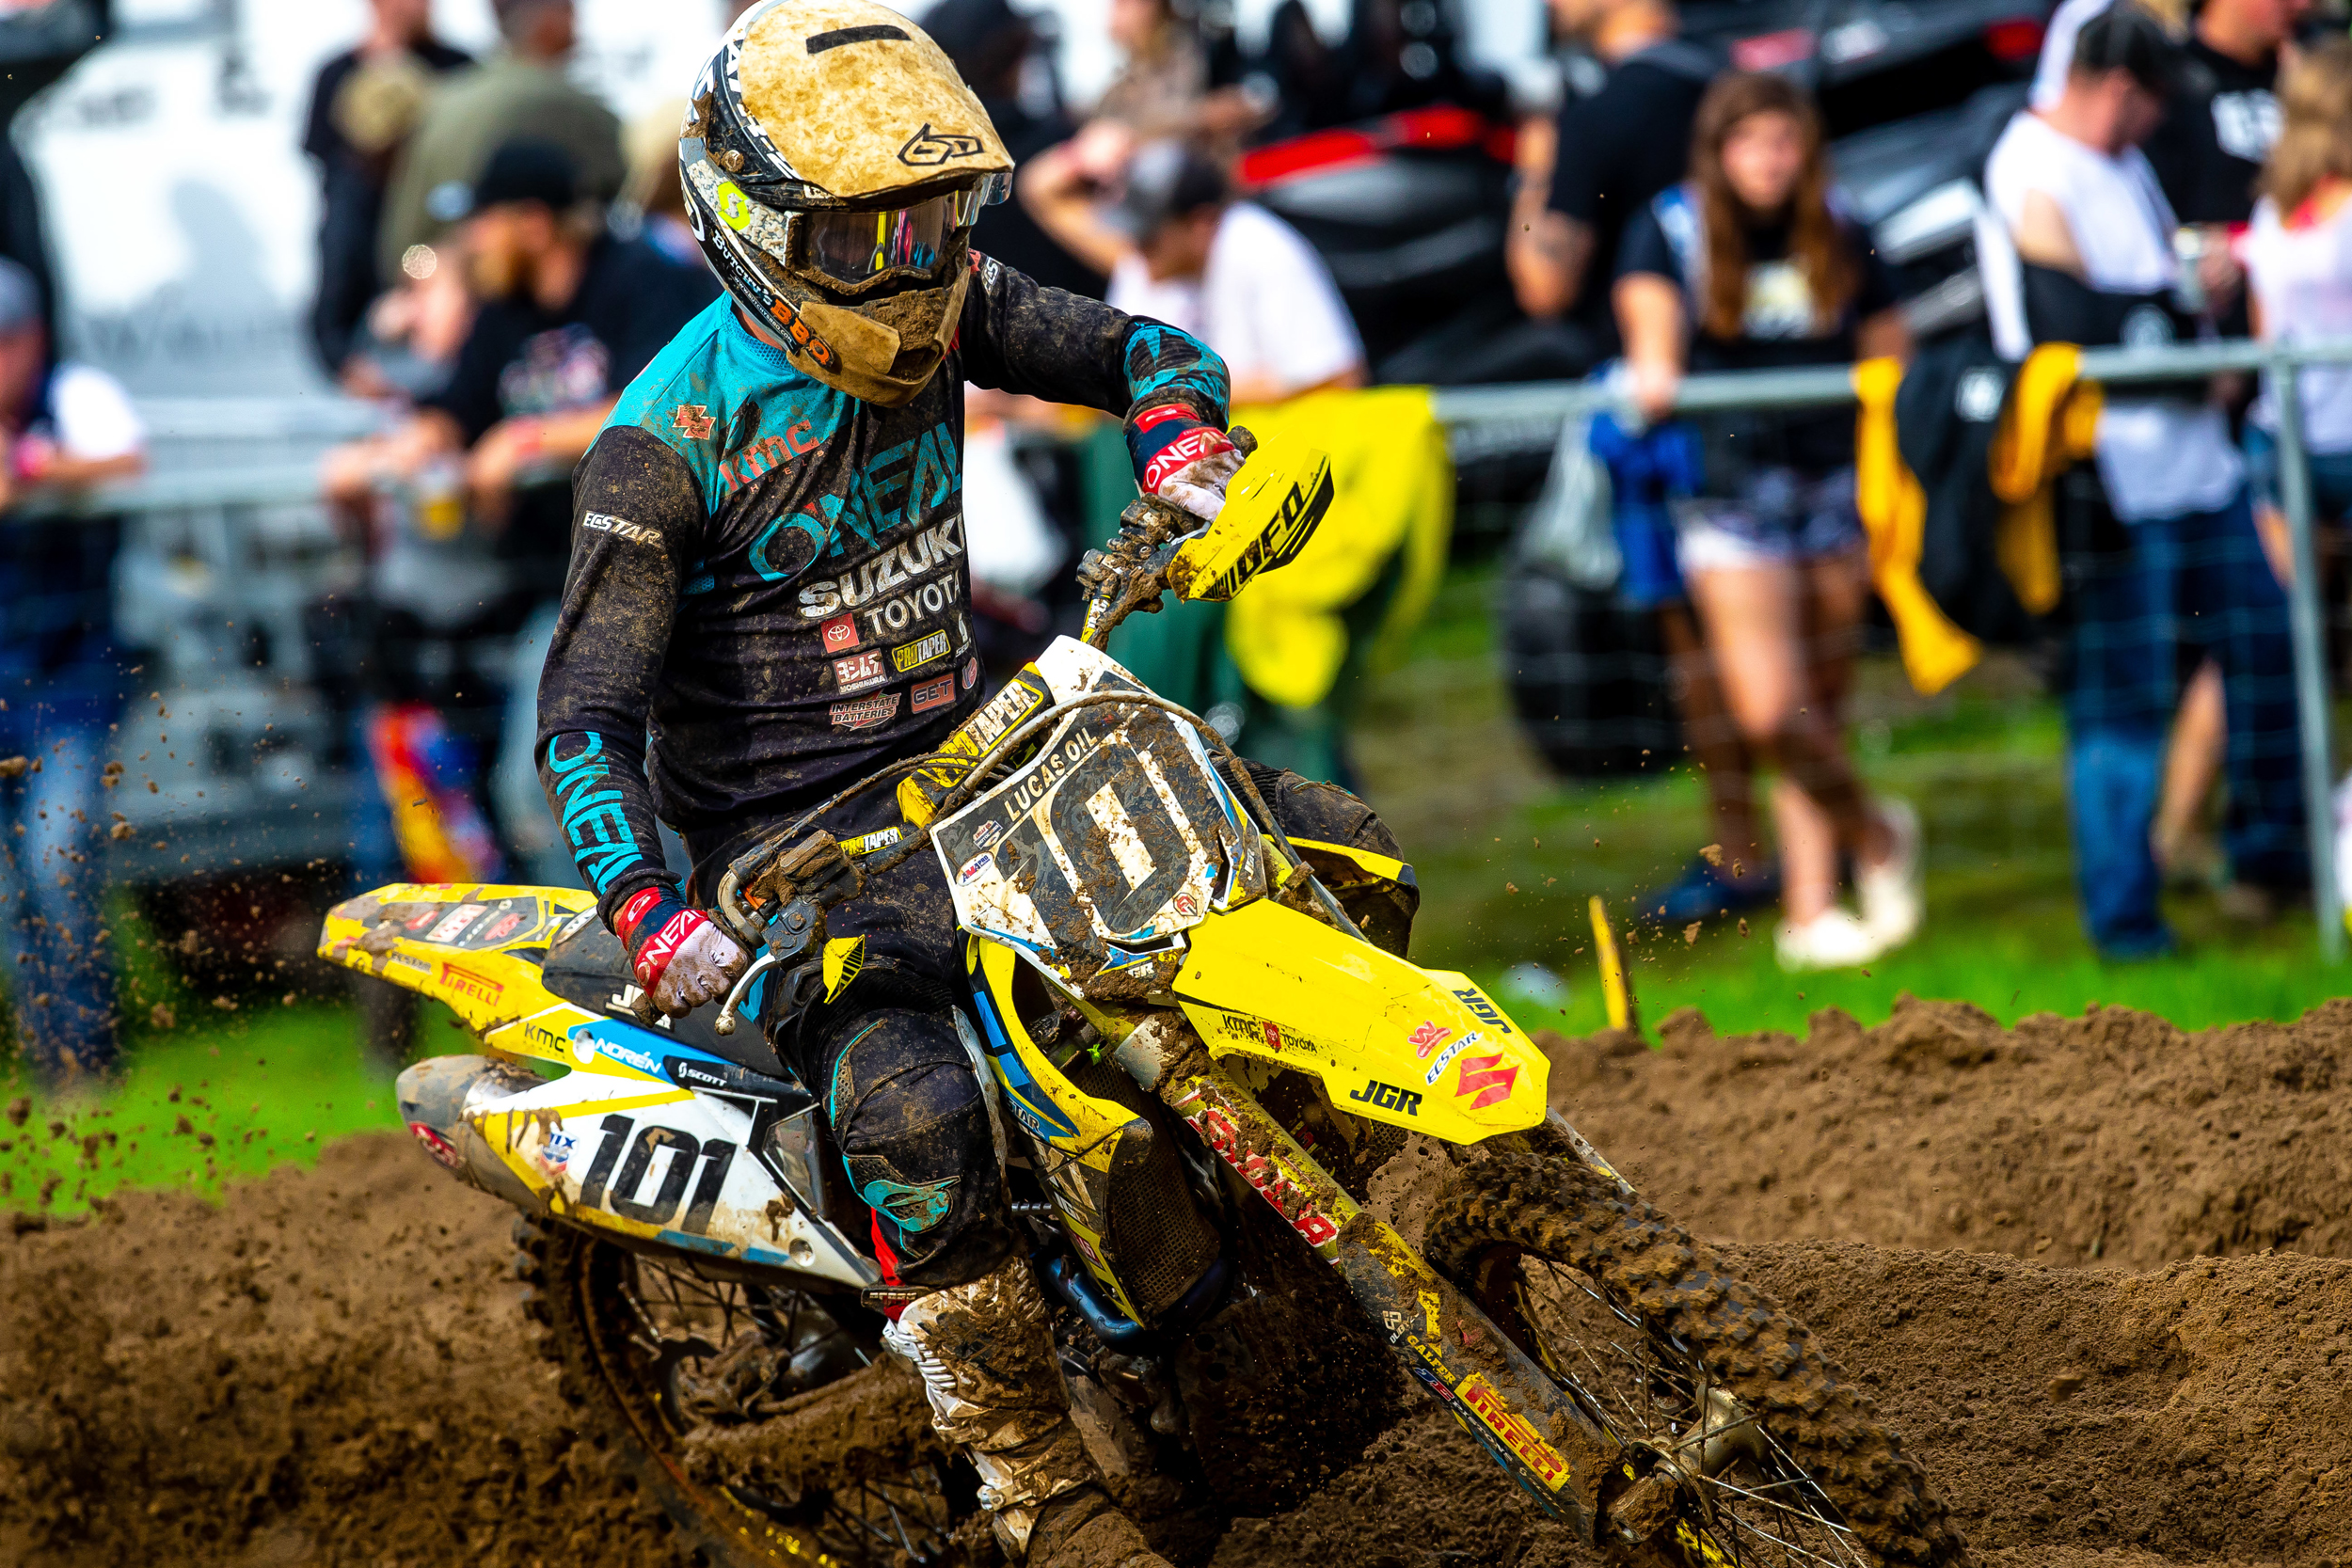 Fredrik Noren (#101) delivers speed on his RM-Z450 in both moto starts